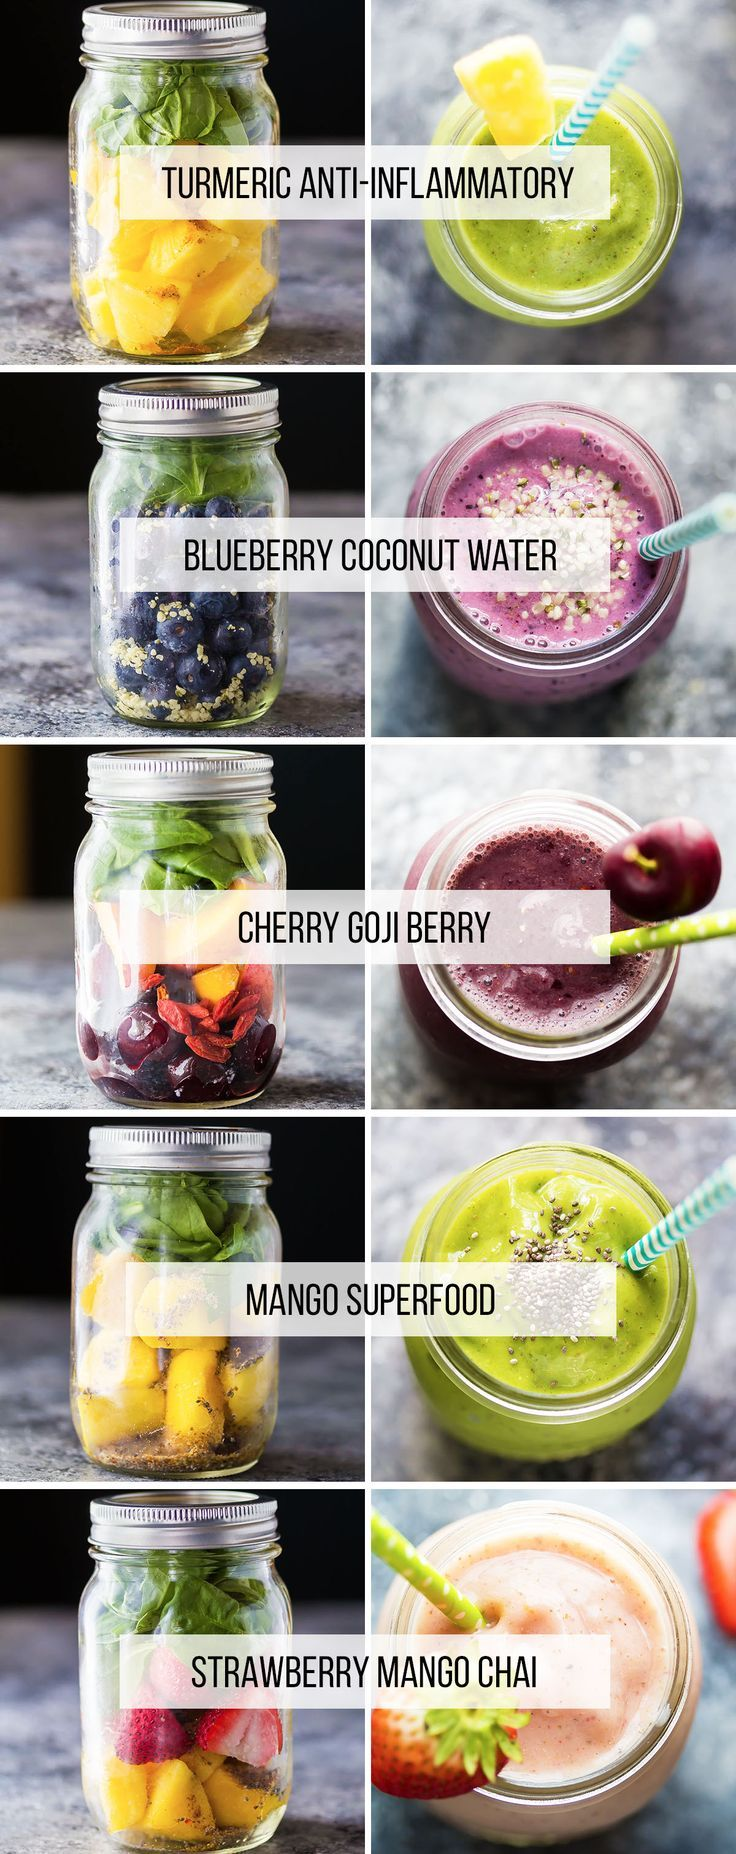 5 Make Ahead Smoothies.  Sugar free, banana free, with instructions to make them ahead and freeze them.